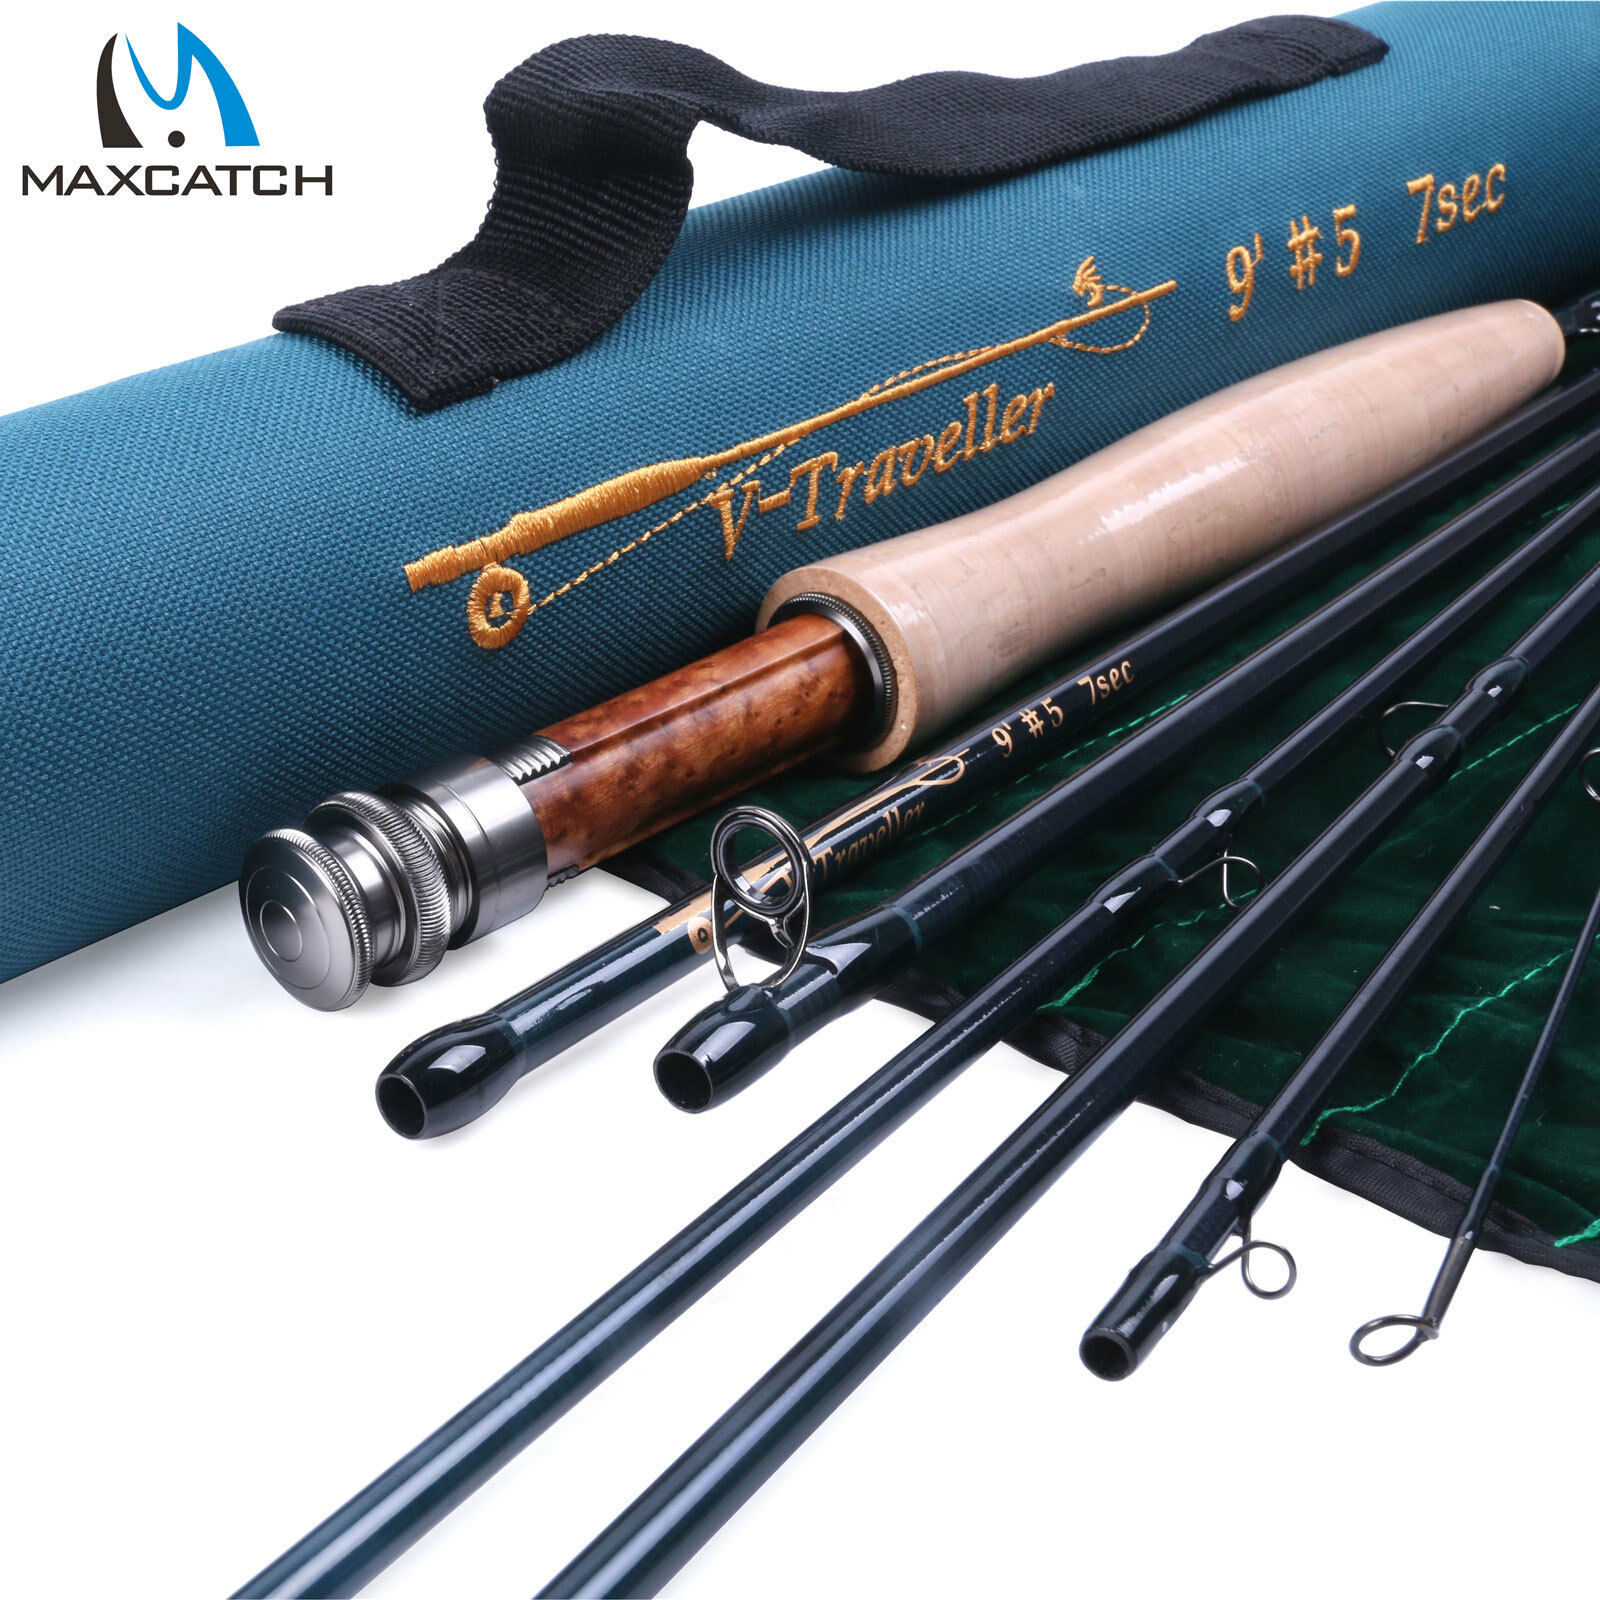 Maxcatch Traveler  Rod 4 5 6 7 8 9wt 9ft 7pcs IM10 Carbon fiber Fly Fishing Rod  shop makes buying and selling